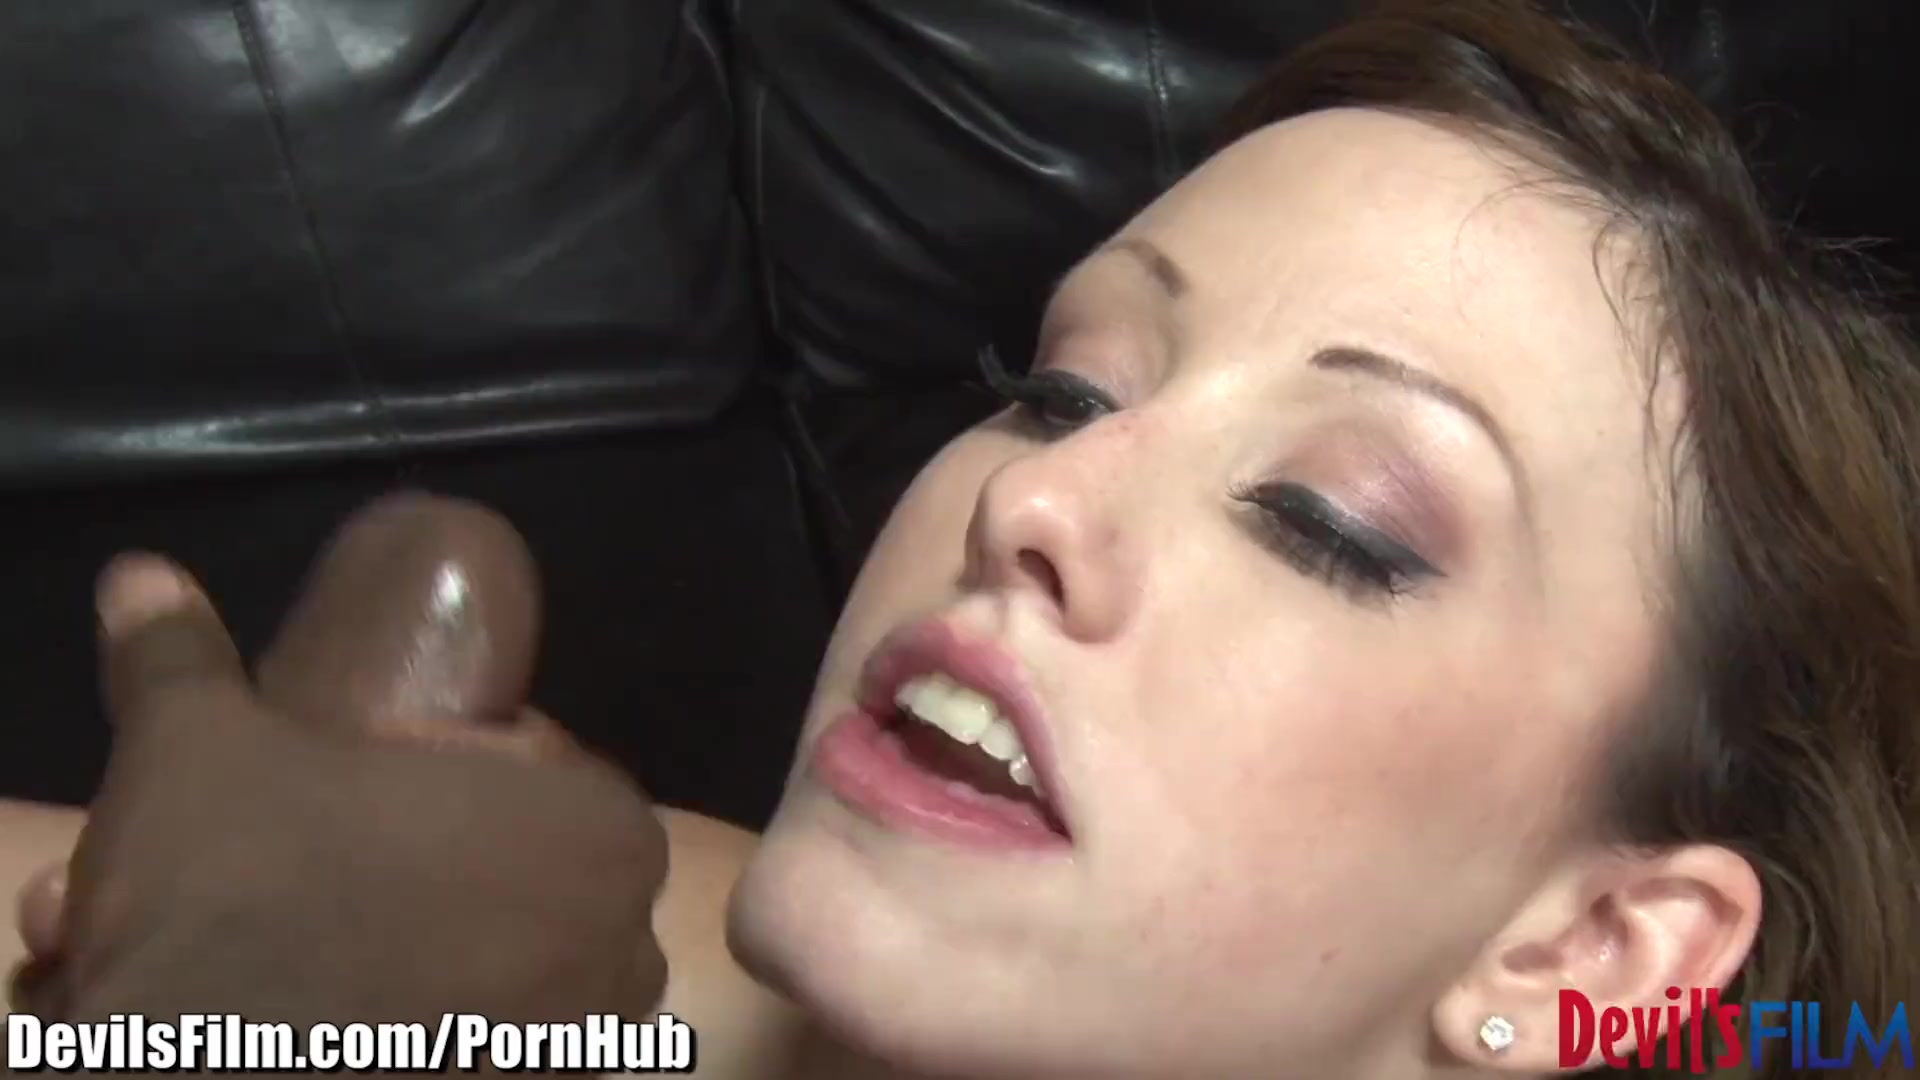 Devilsfilm jennifer white interracial gang bang